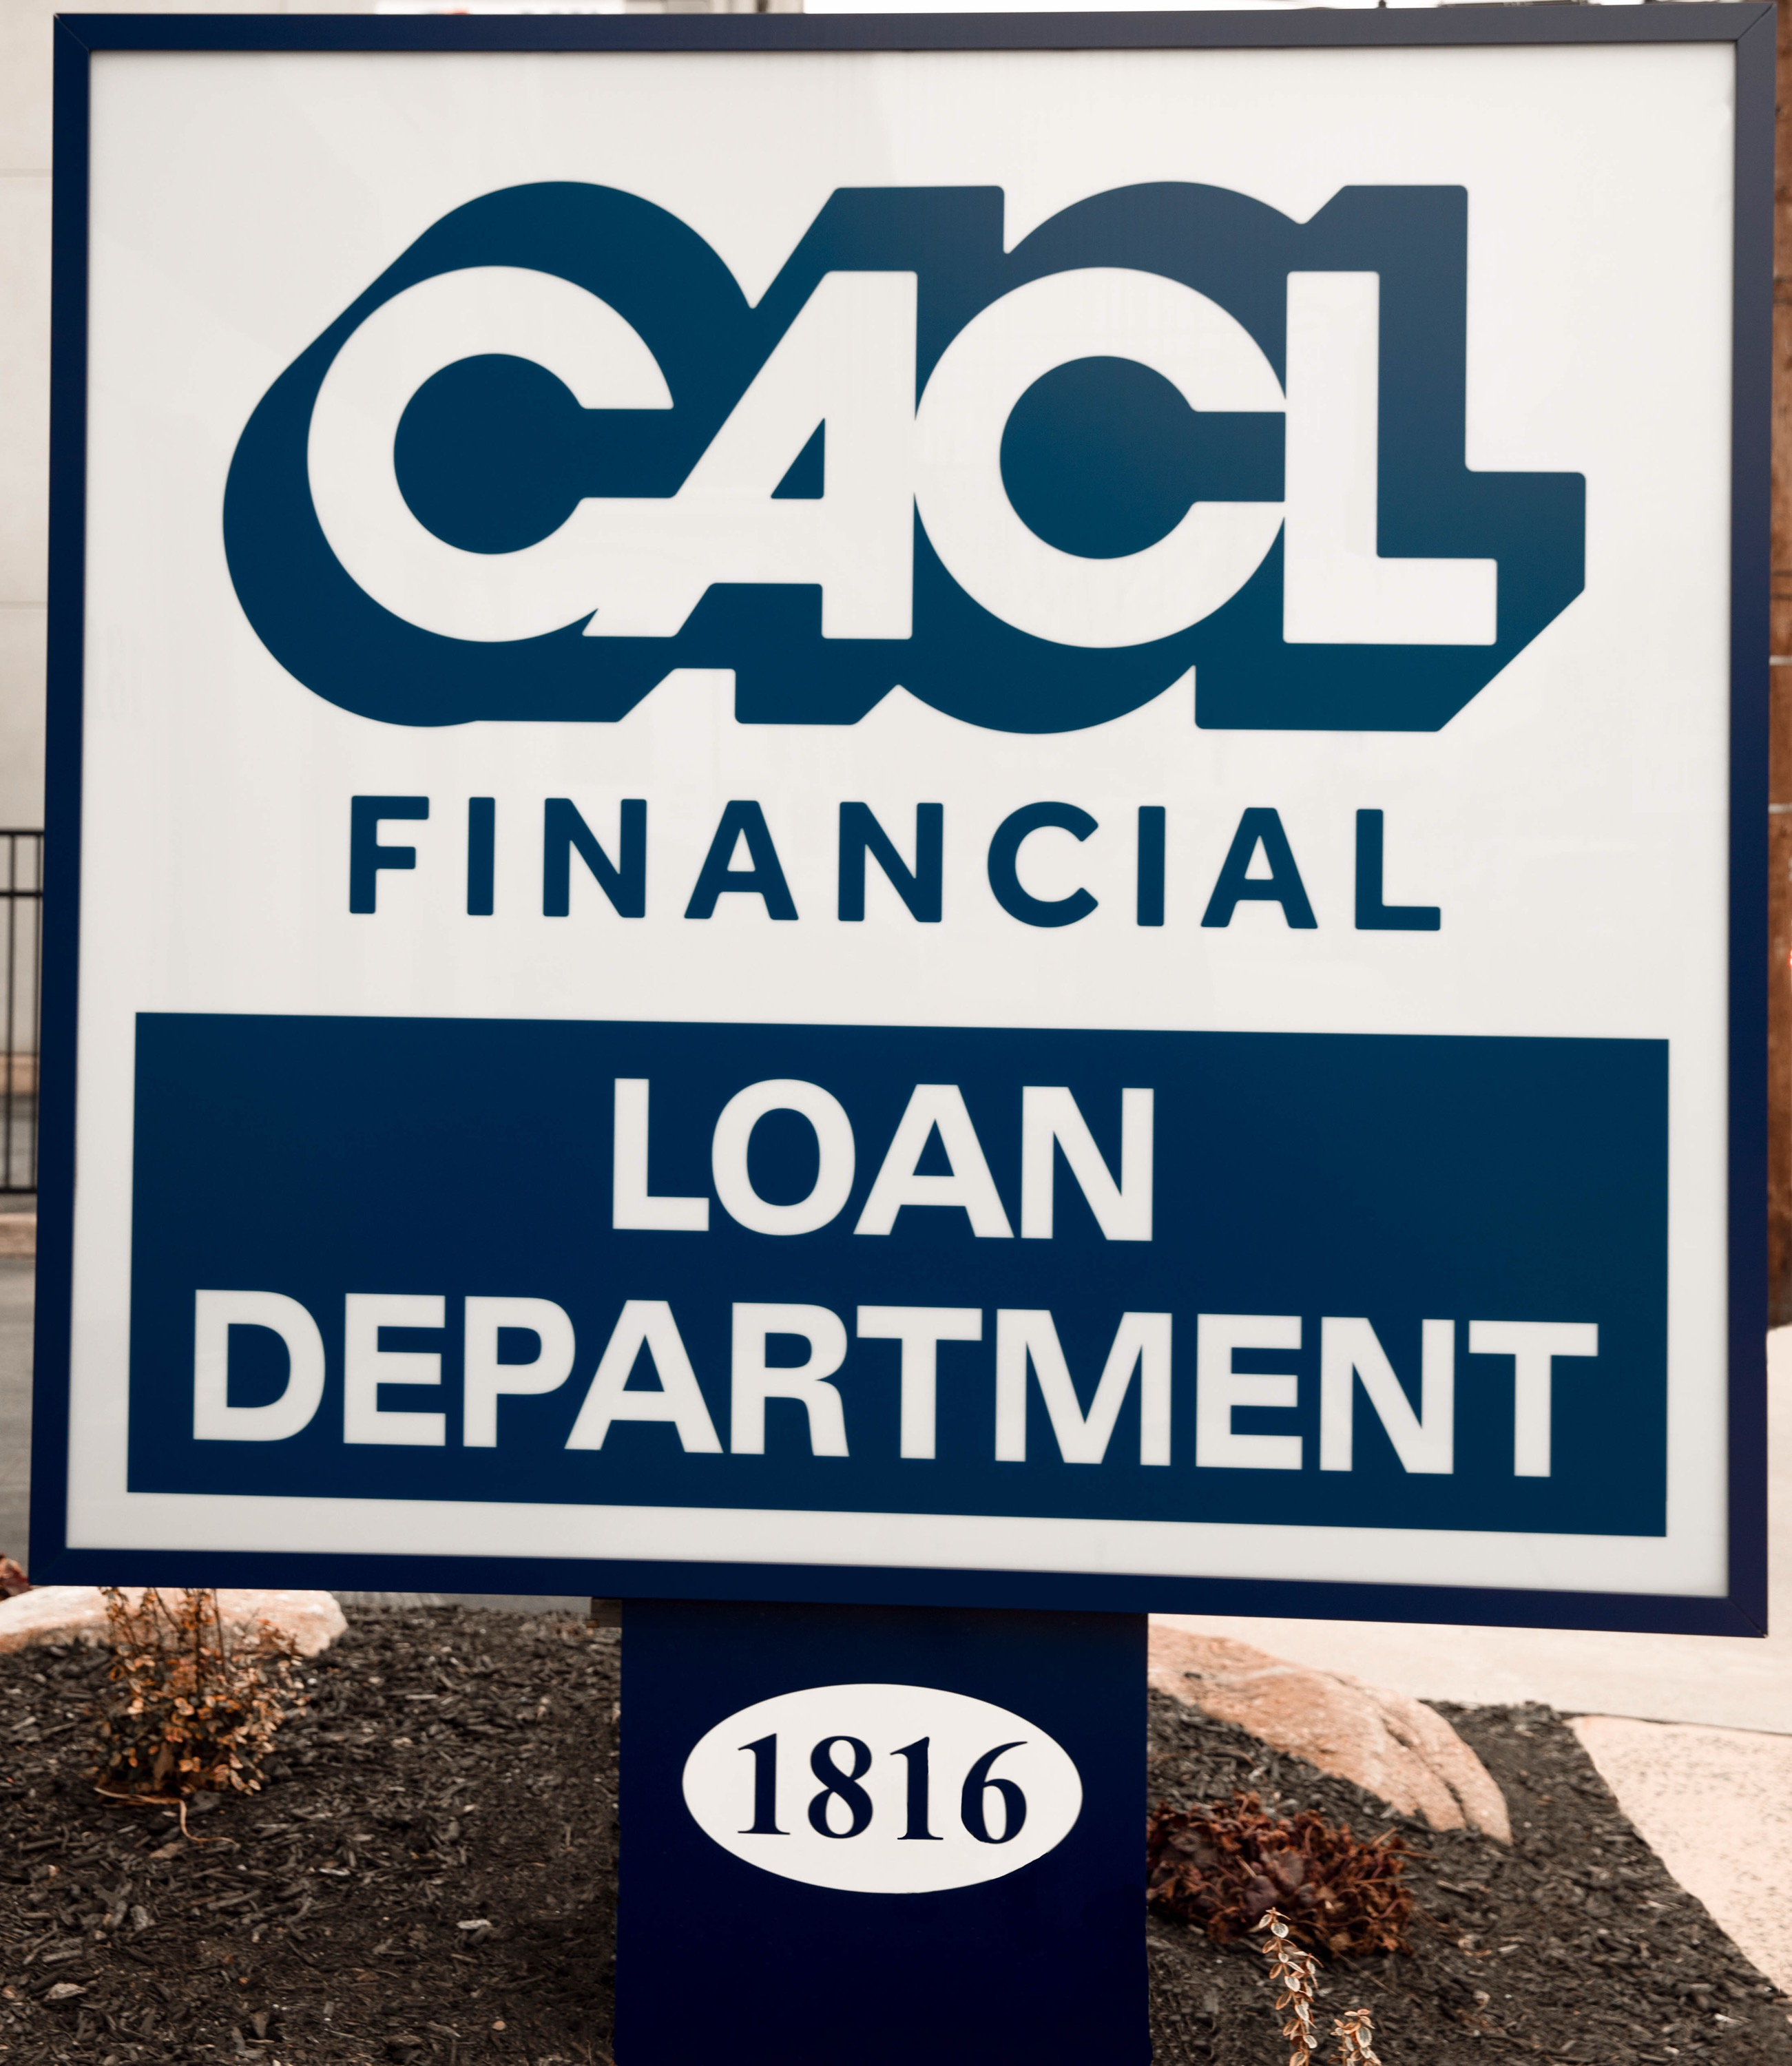 CACL Loan Department sign